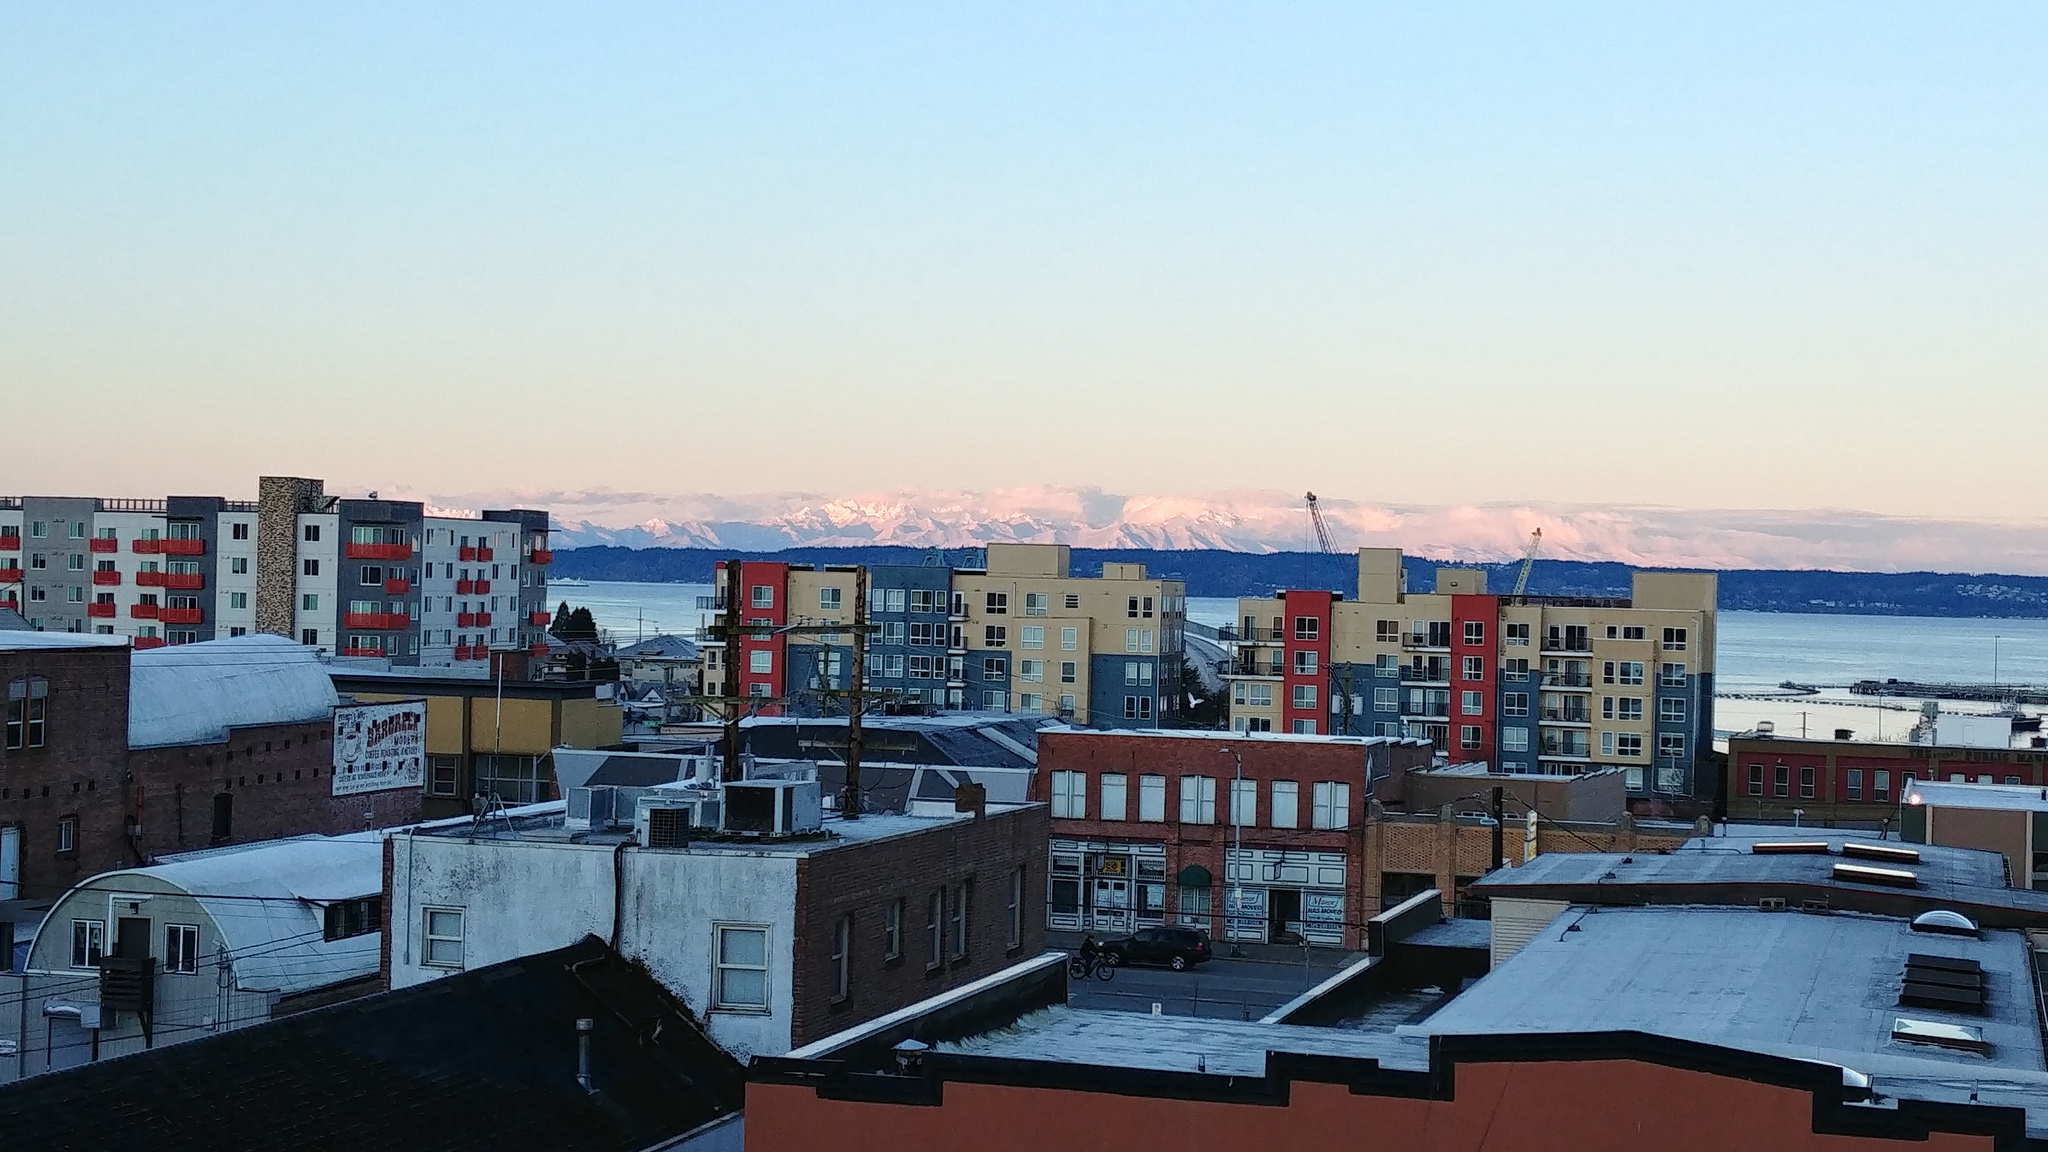 The Olympic Mountains seen from Everpark // Christopher Bragg